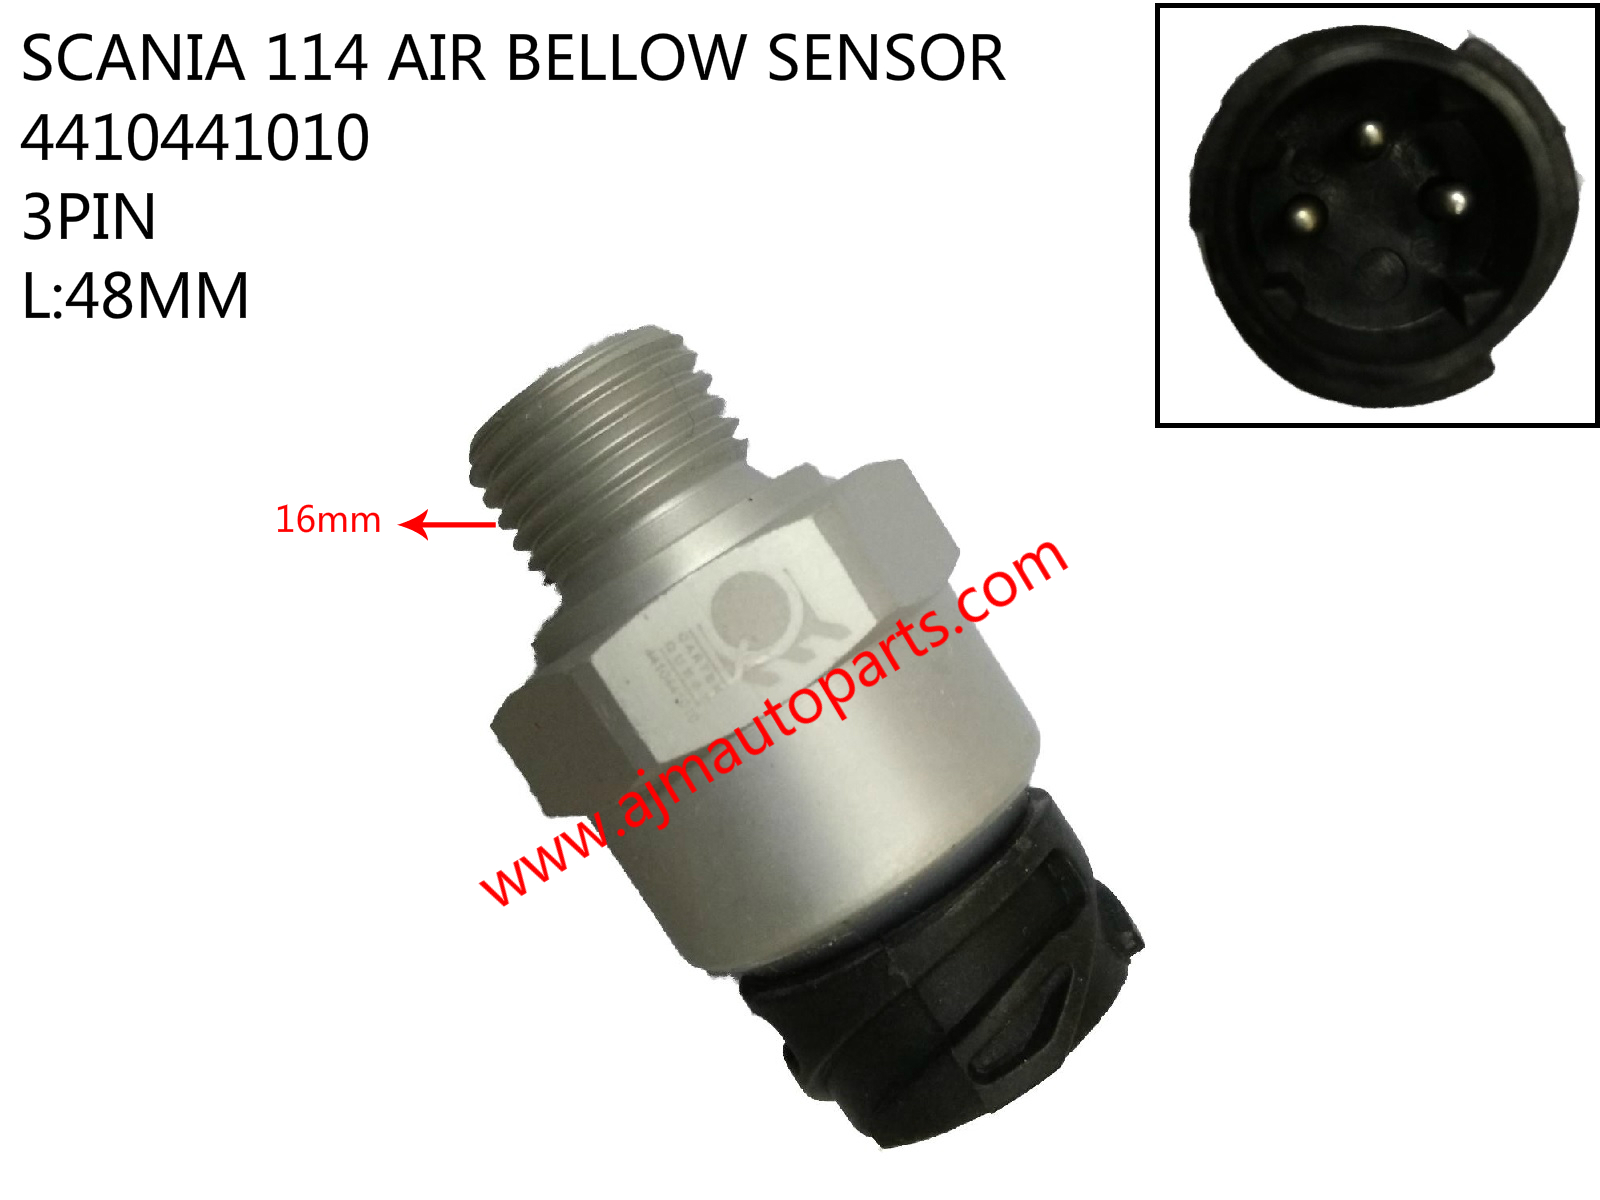 SCANIA 114 AIR BELLOW SENSOR-4410441010